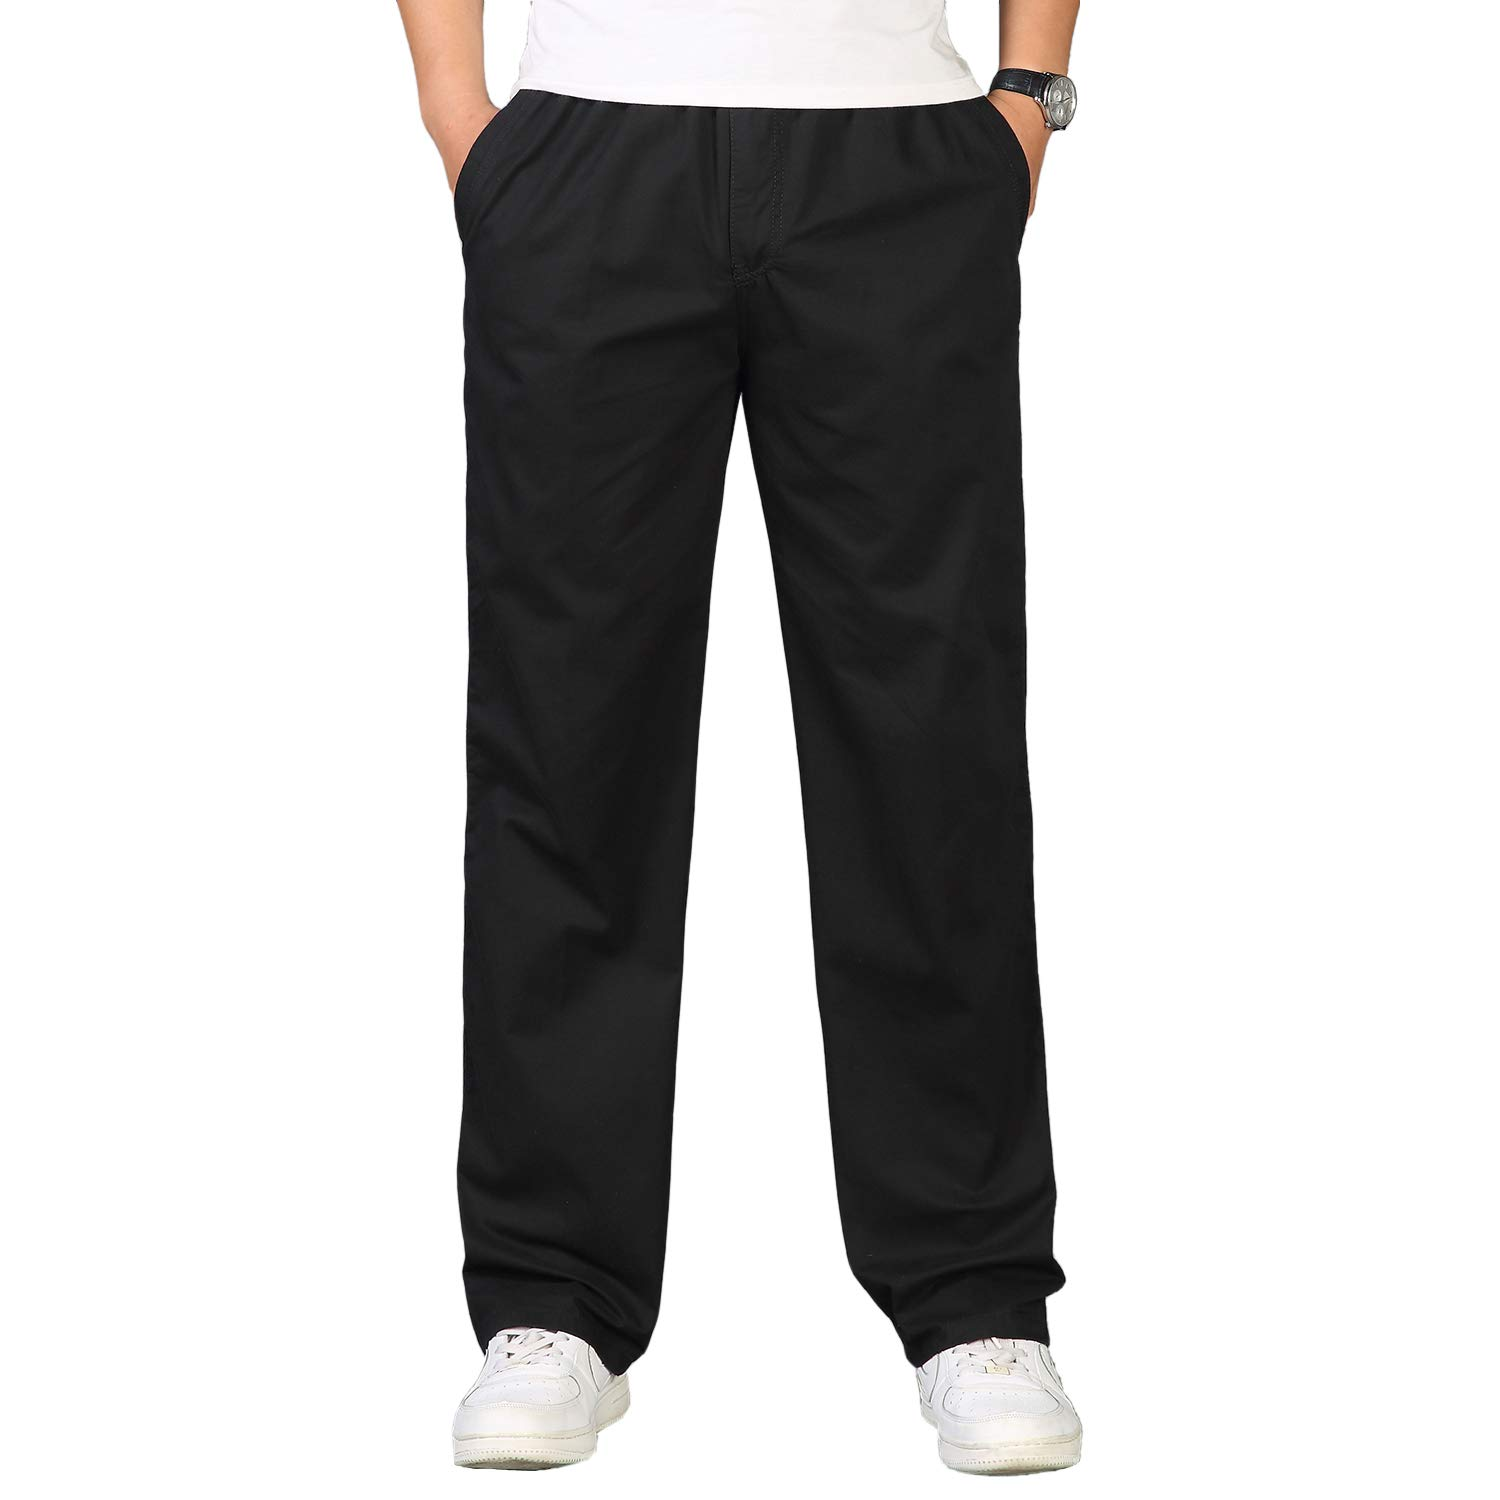 Mens Smart Casual Rugby Trousers Chino Cotton Trousers Pants with Elasticated Waist Drawstrings Loose Fit